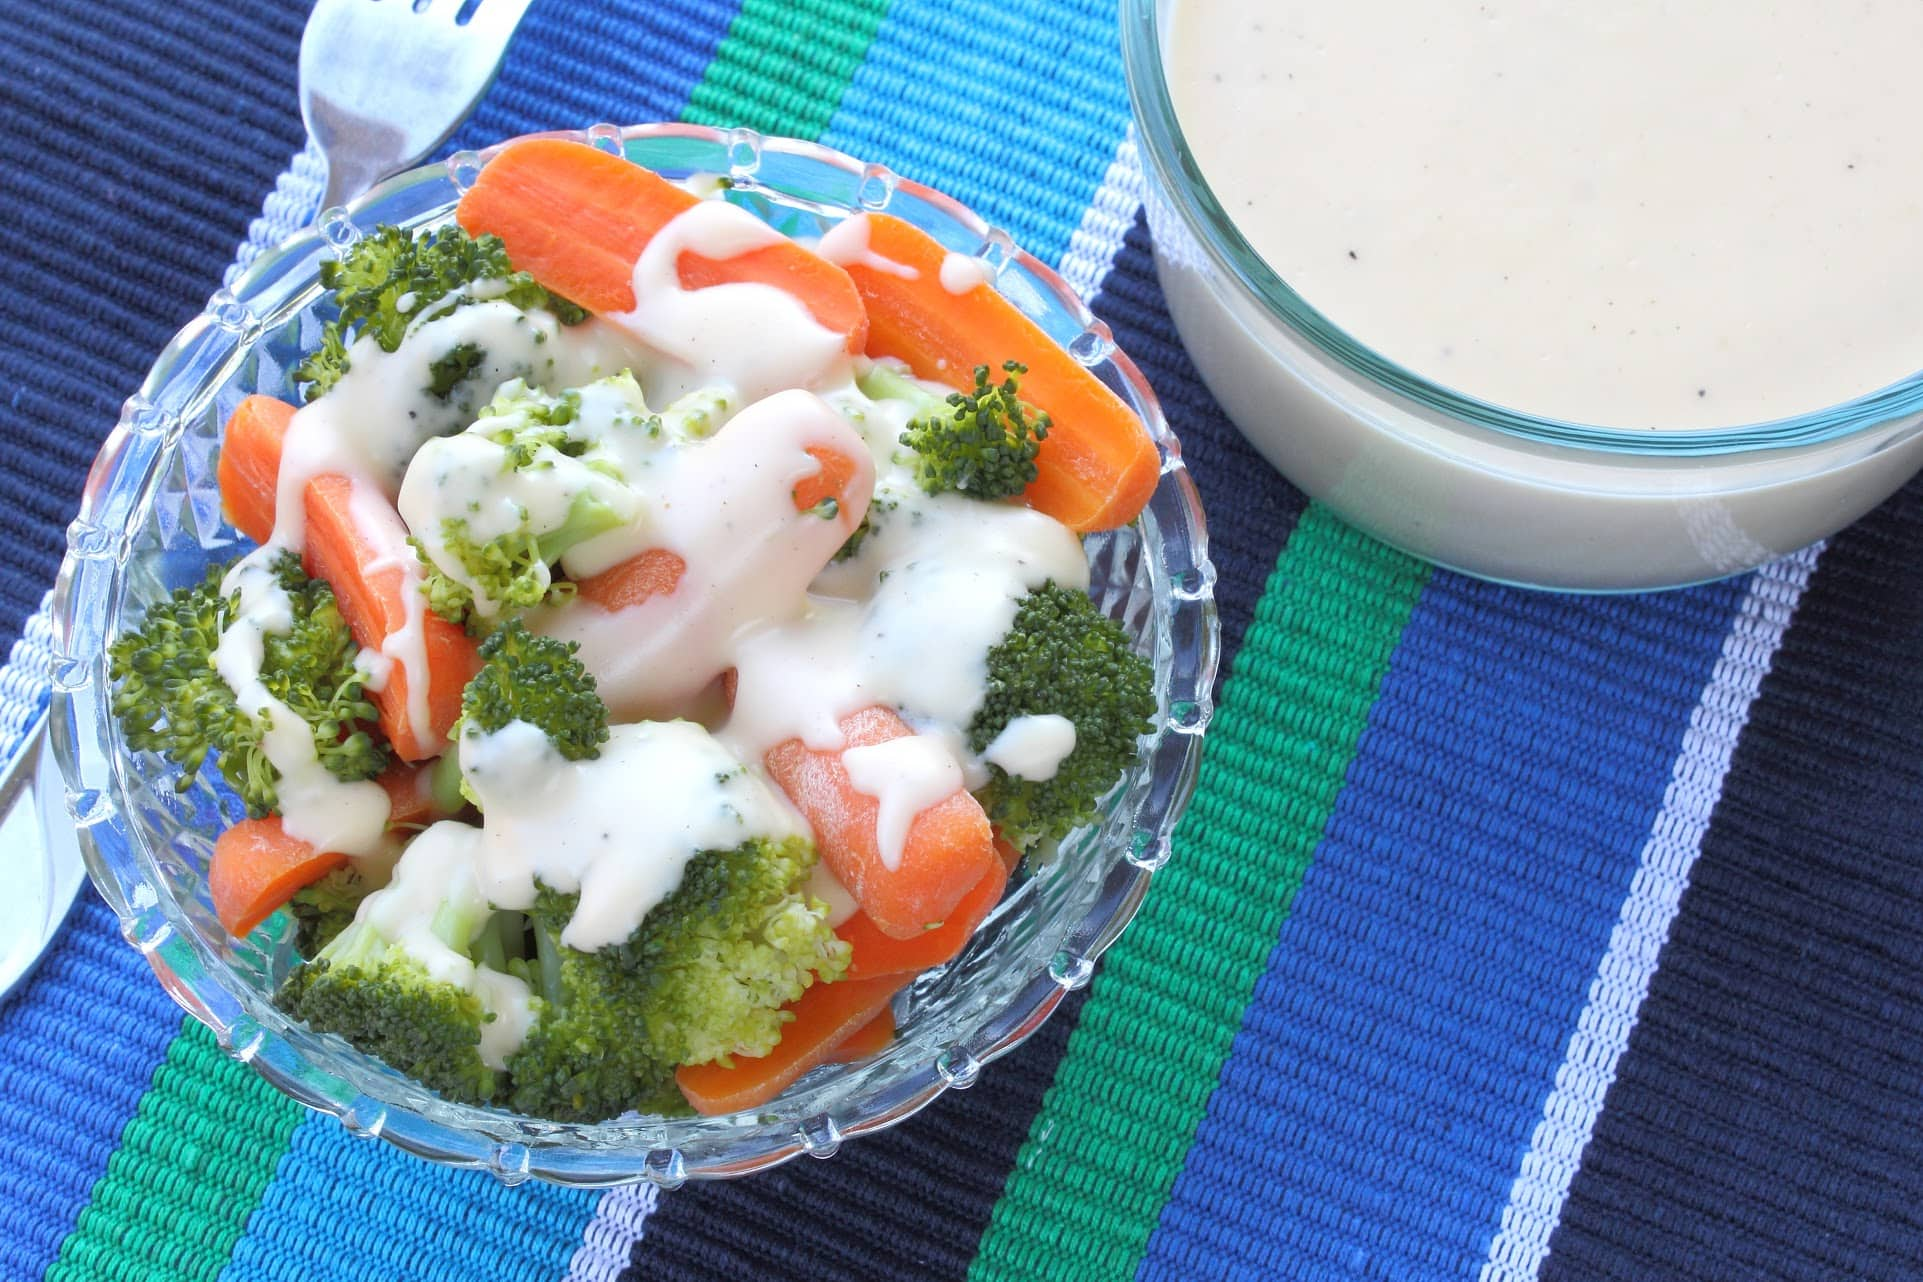 Steamed Broccoli And Baby Carrots With Creamy Cheese Sauce Recipe